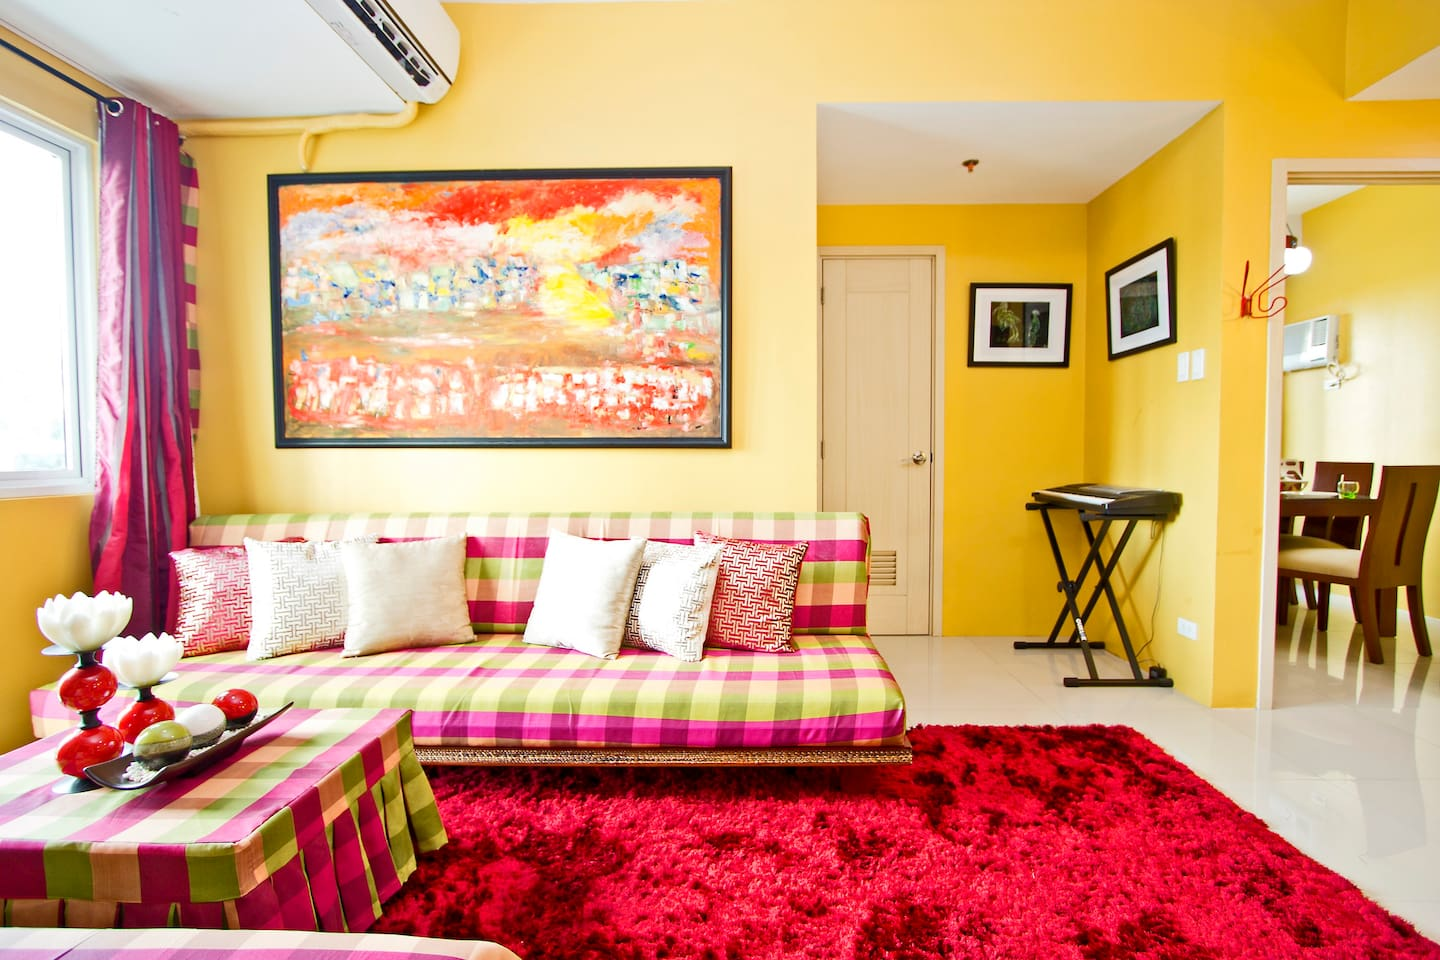 Living Room has A/C, piano, mahogany center table and couches with customized curtains and  fabric. The painting is called Habagat (Typhoon) painted by 3 Marias (Bea, Joy and May) under the supervision of Artist/Master Rolly Rosal.